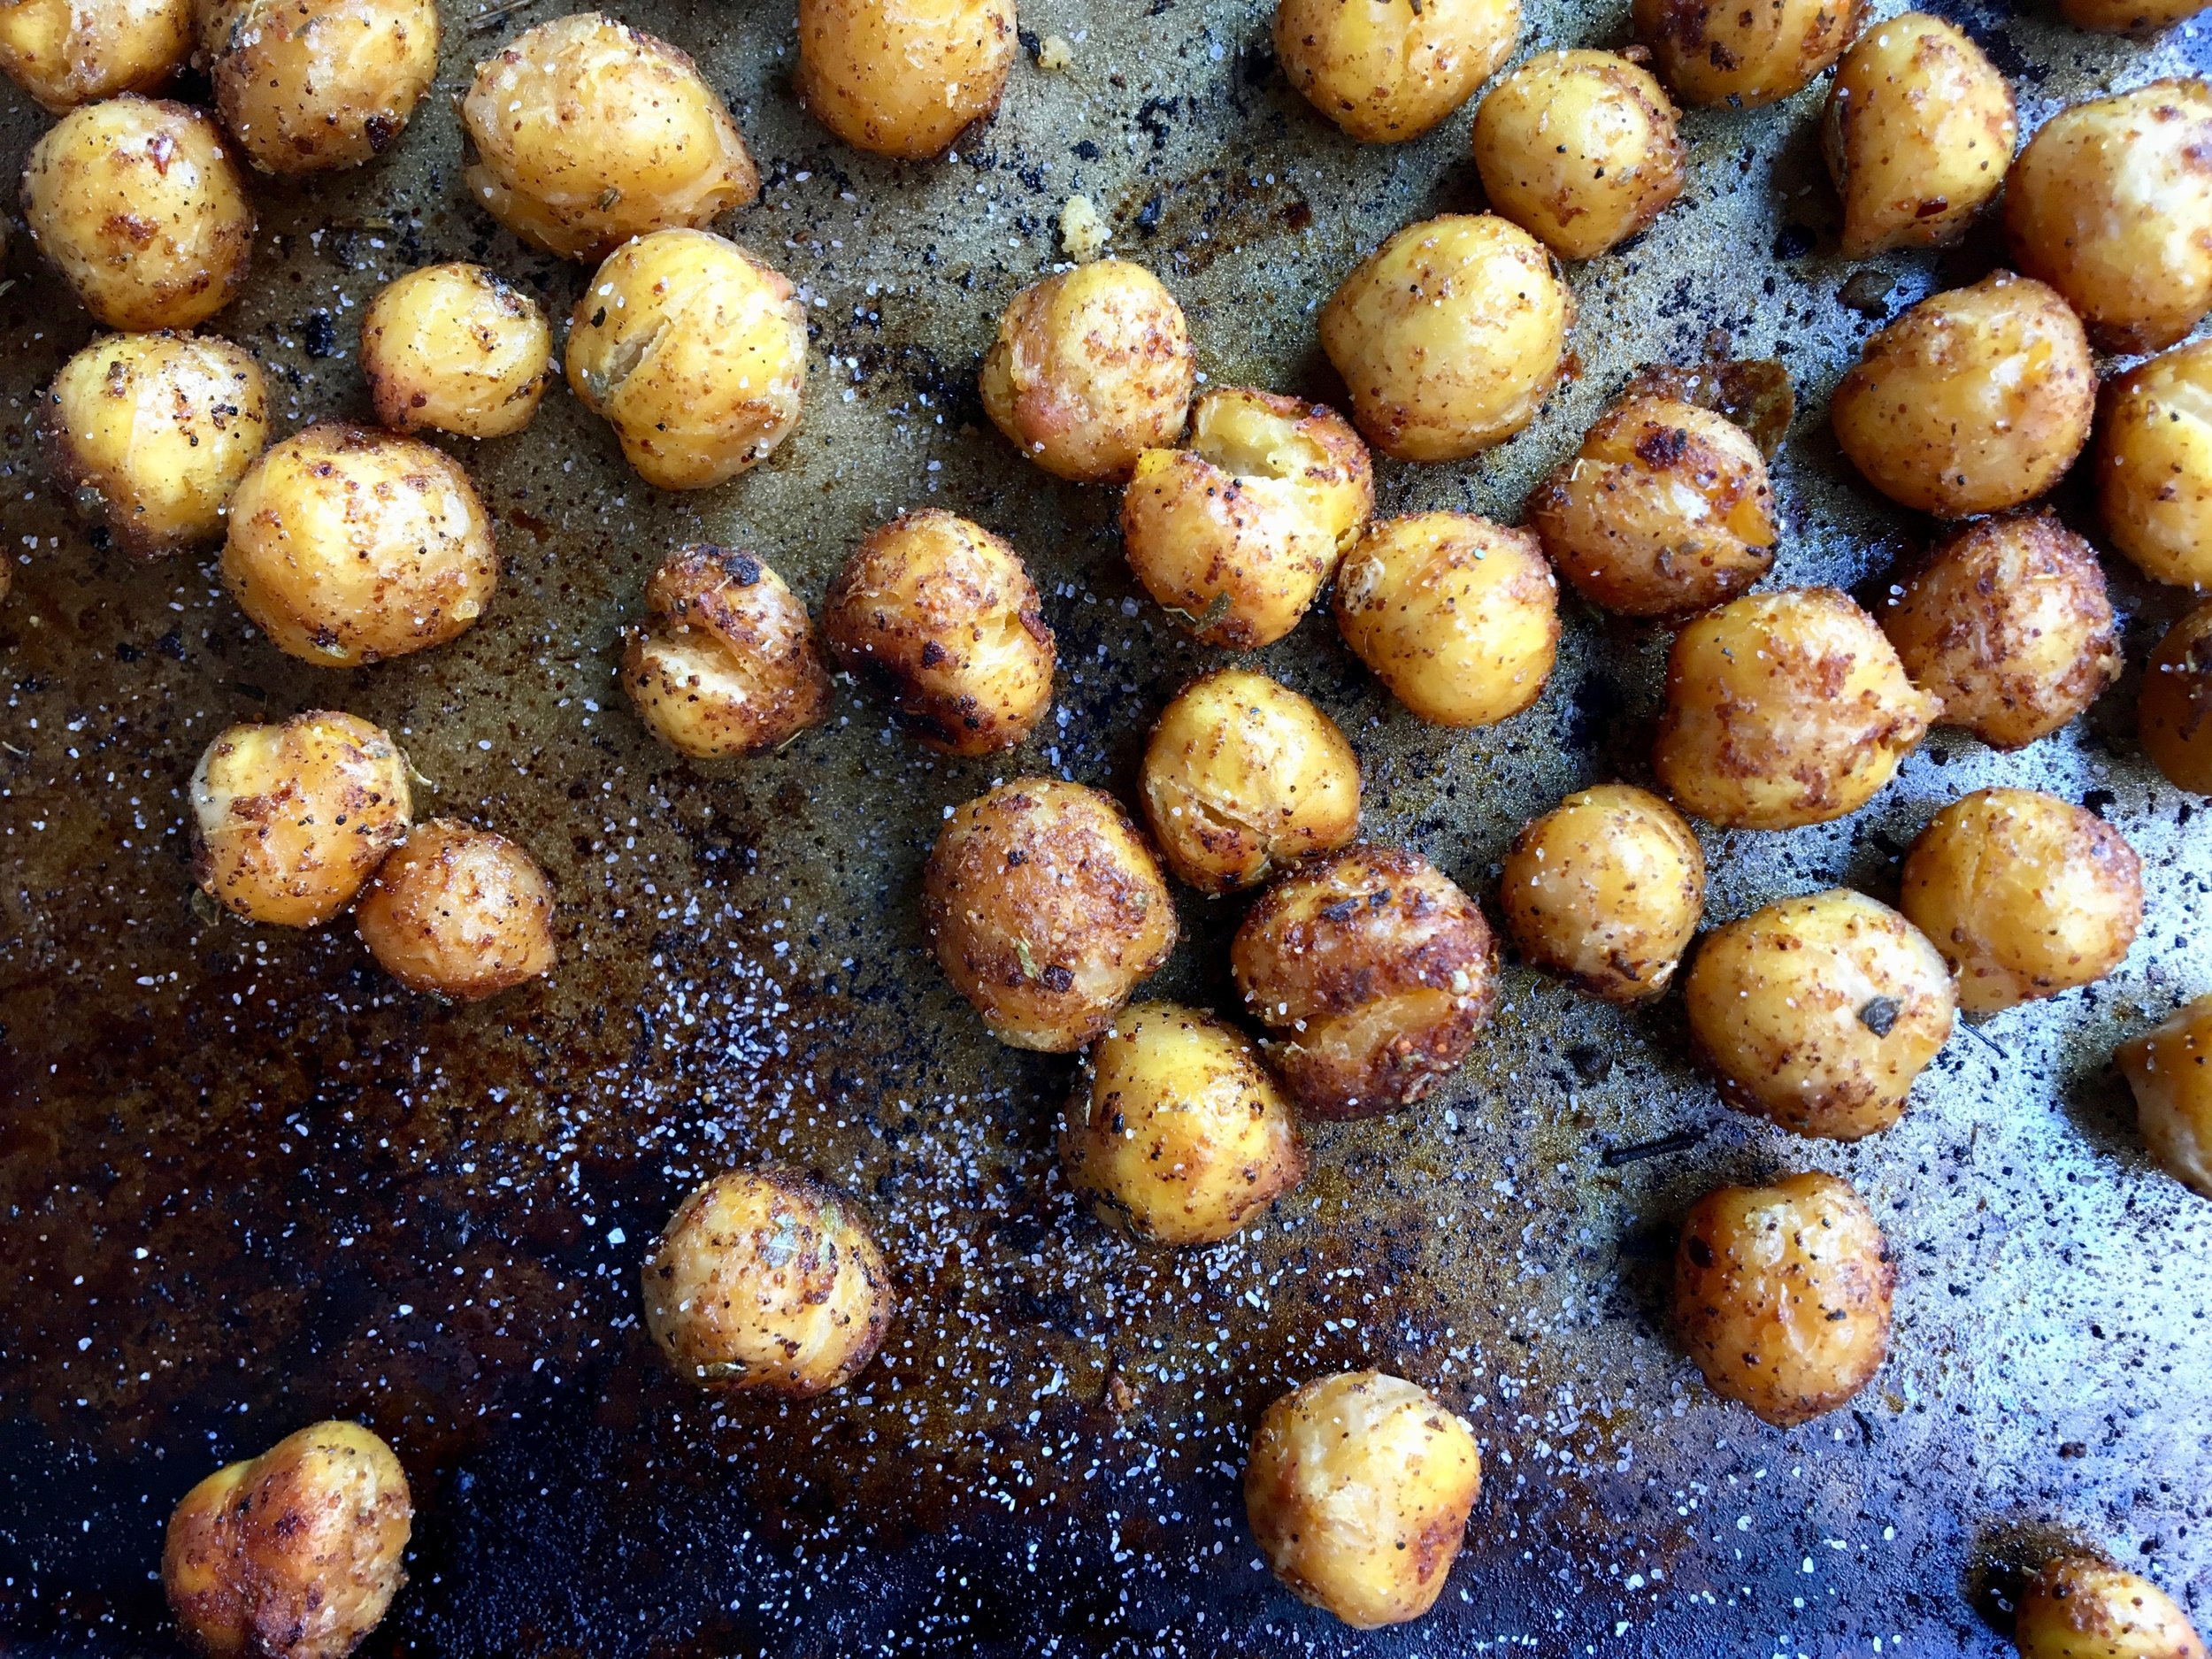 chickpeas_roasted.jpg